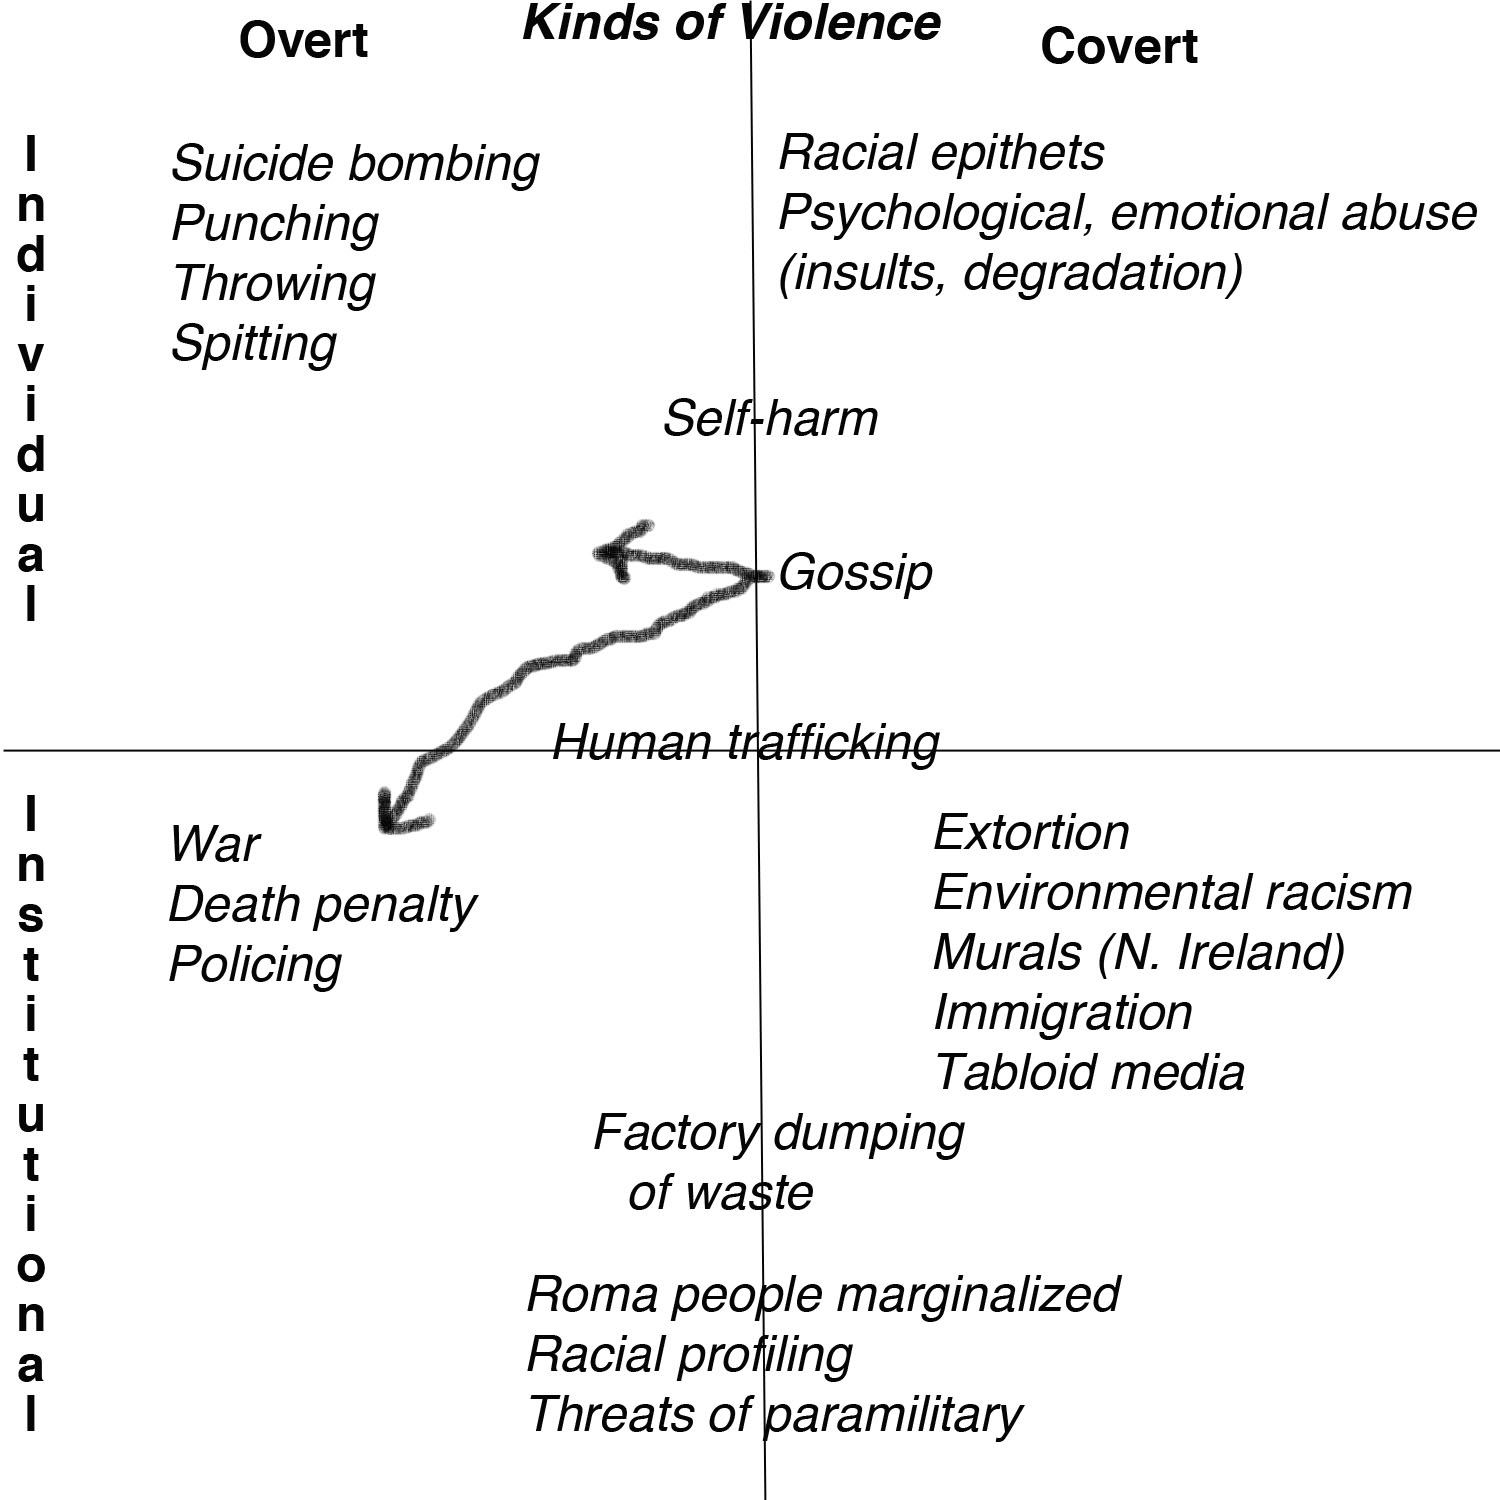 home sweet home in our discussion we came up these charts giving examples of violence in its many manifestations